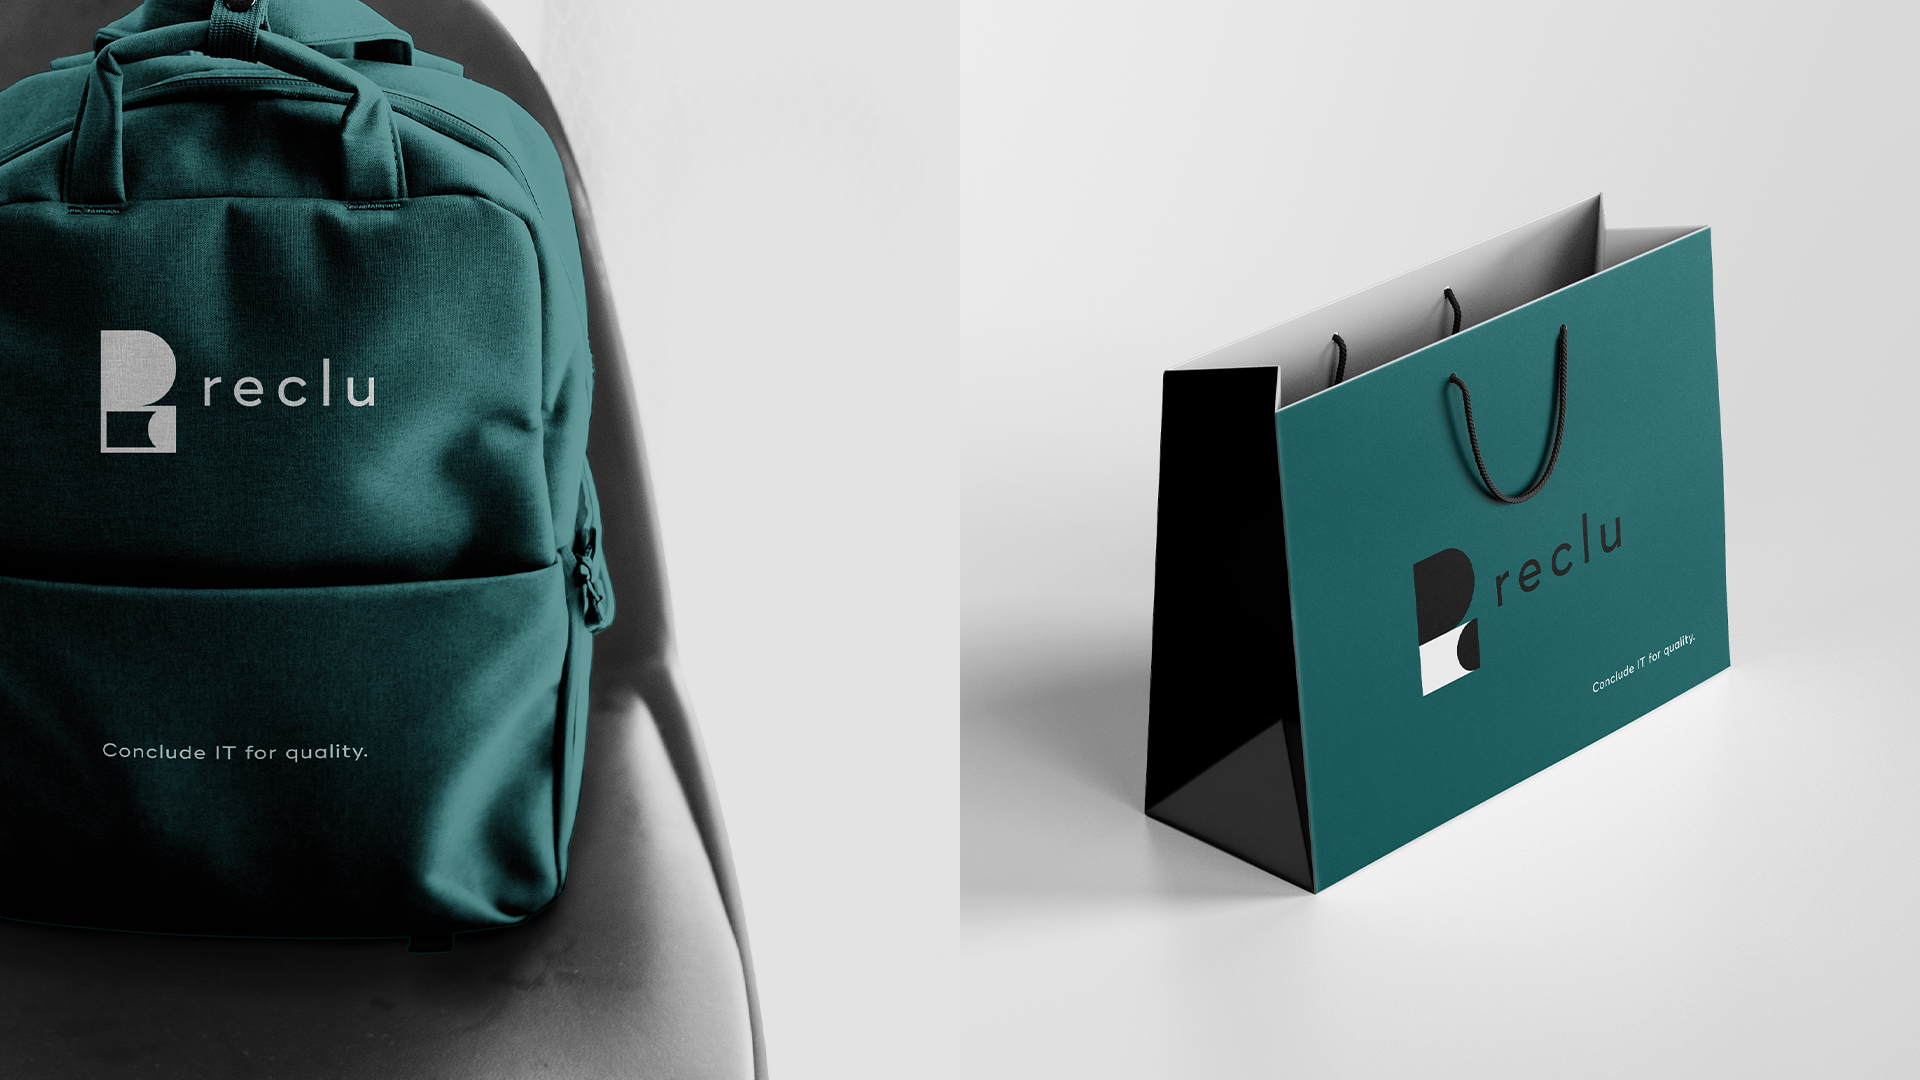 Reclu-Visual-Identity-by-Emtisquare-9